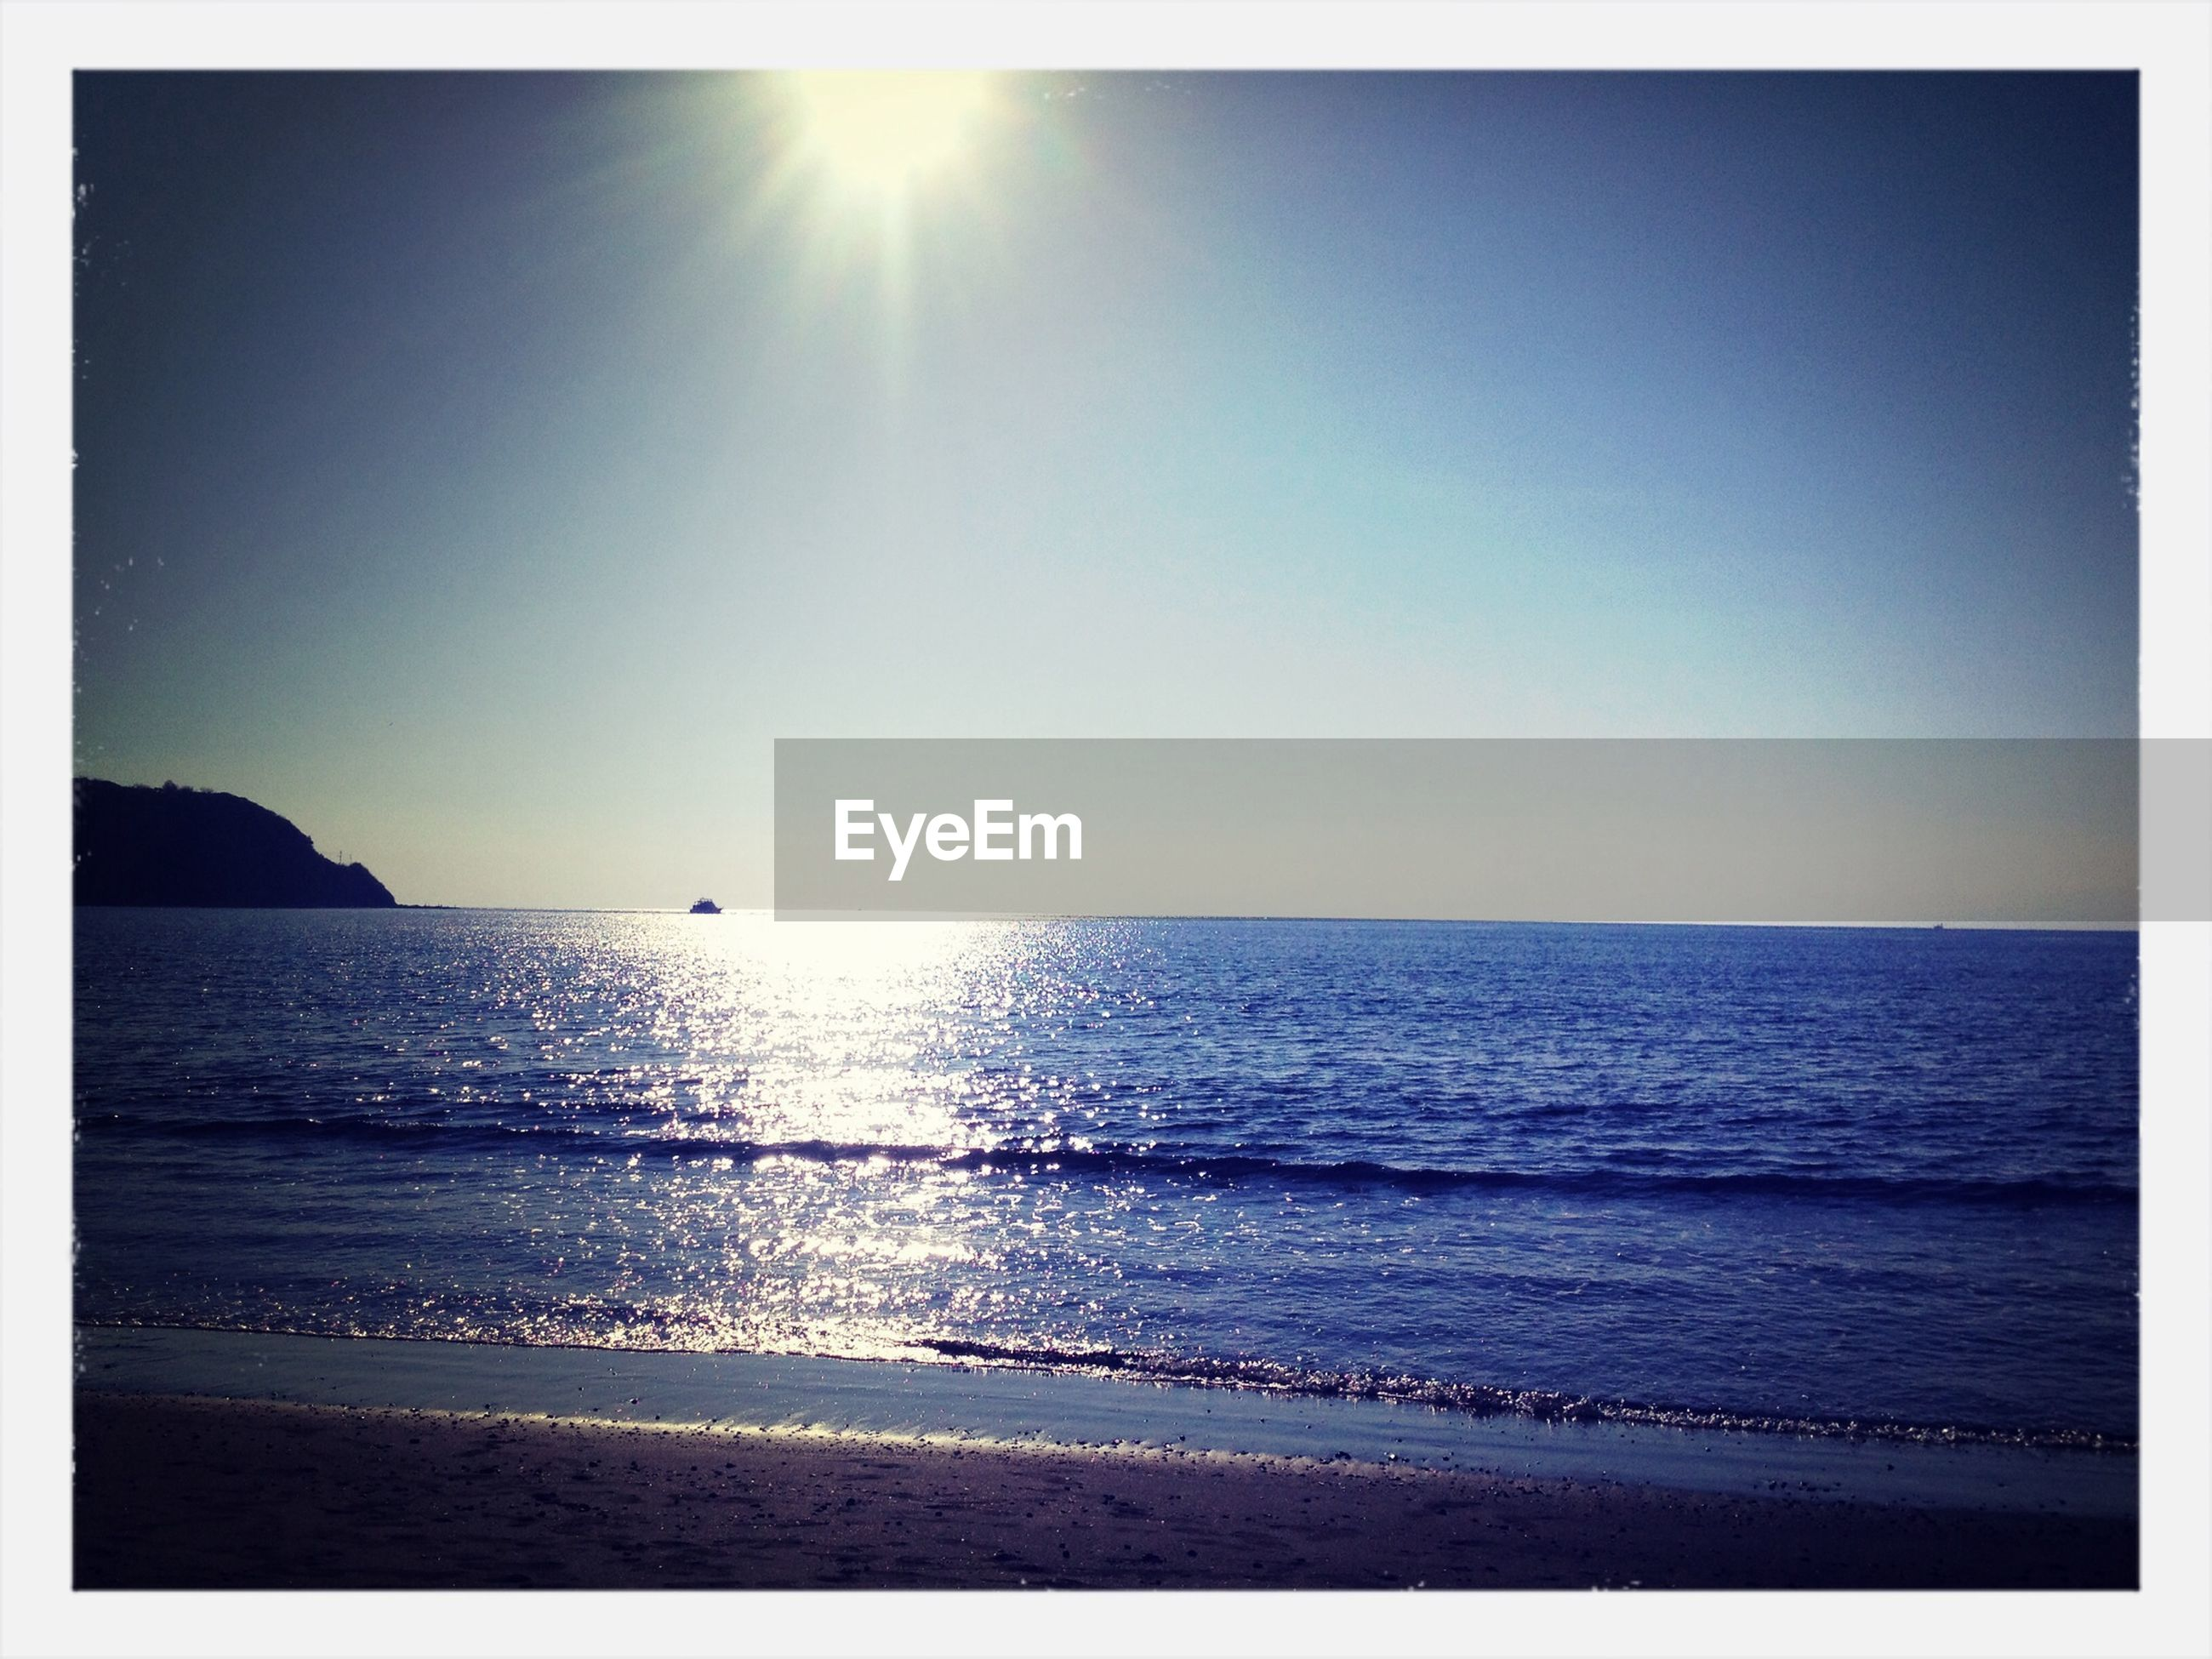 sea, horizon over water, water, sun, tranquil scene, scenics, tranquility, beach, beauty in nature, transfer print, clear sky, shore, nature, sunlight, idyllic, auto post production filter, copy space, sunbeam, sky, seascape